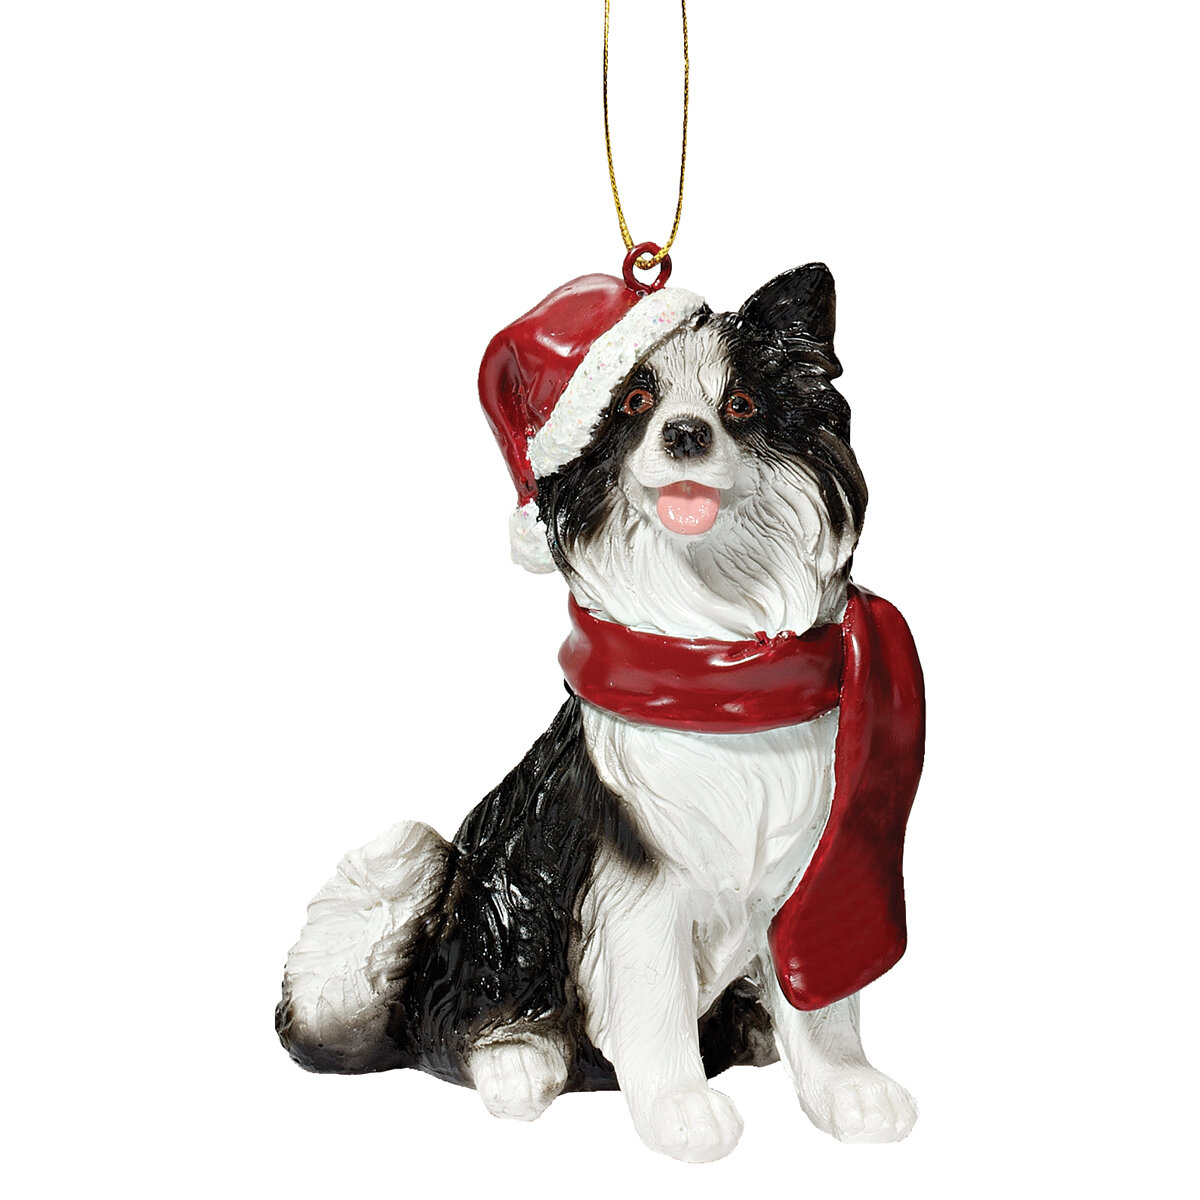 Border Collie Dangling Legs Ornament Pet Dog Holiday Christmas Tree Decoration